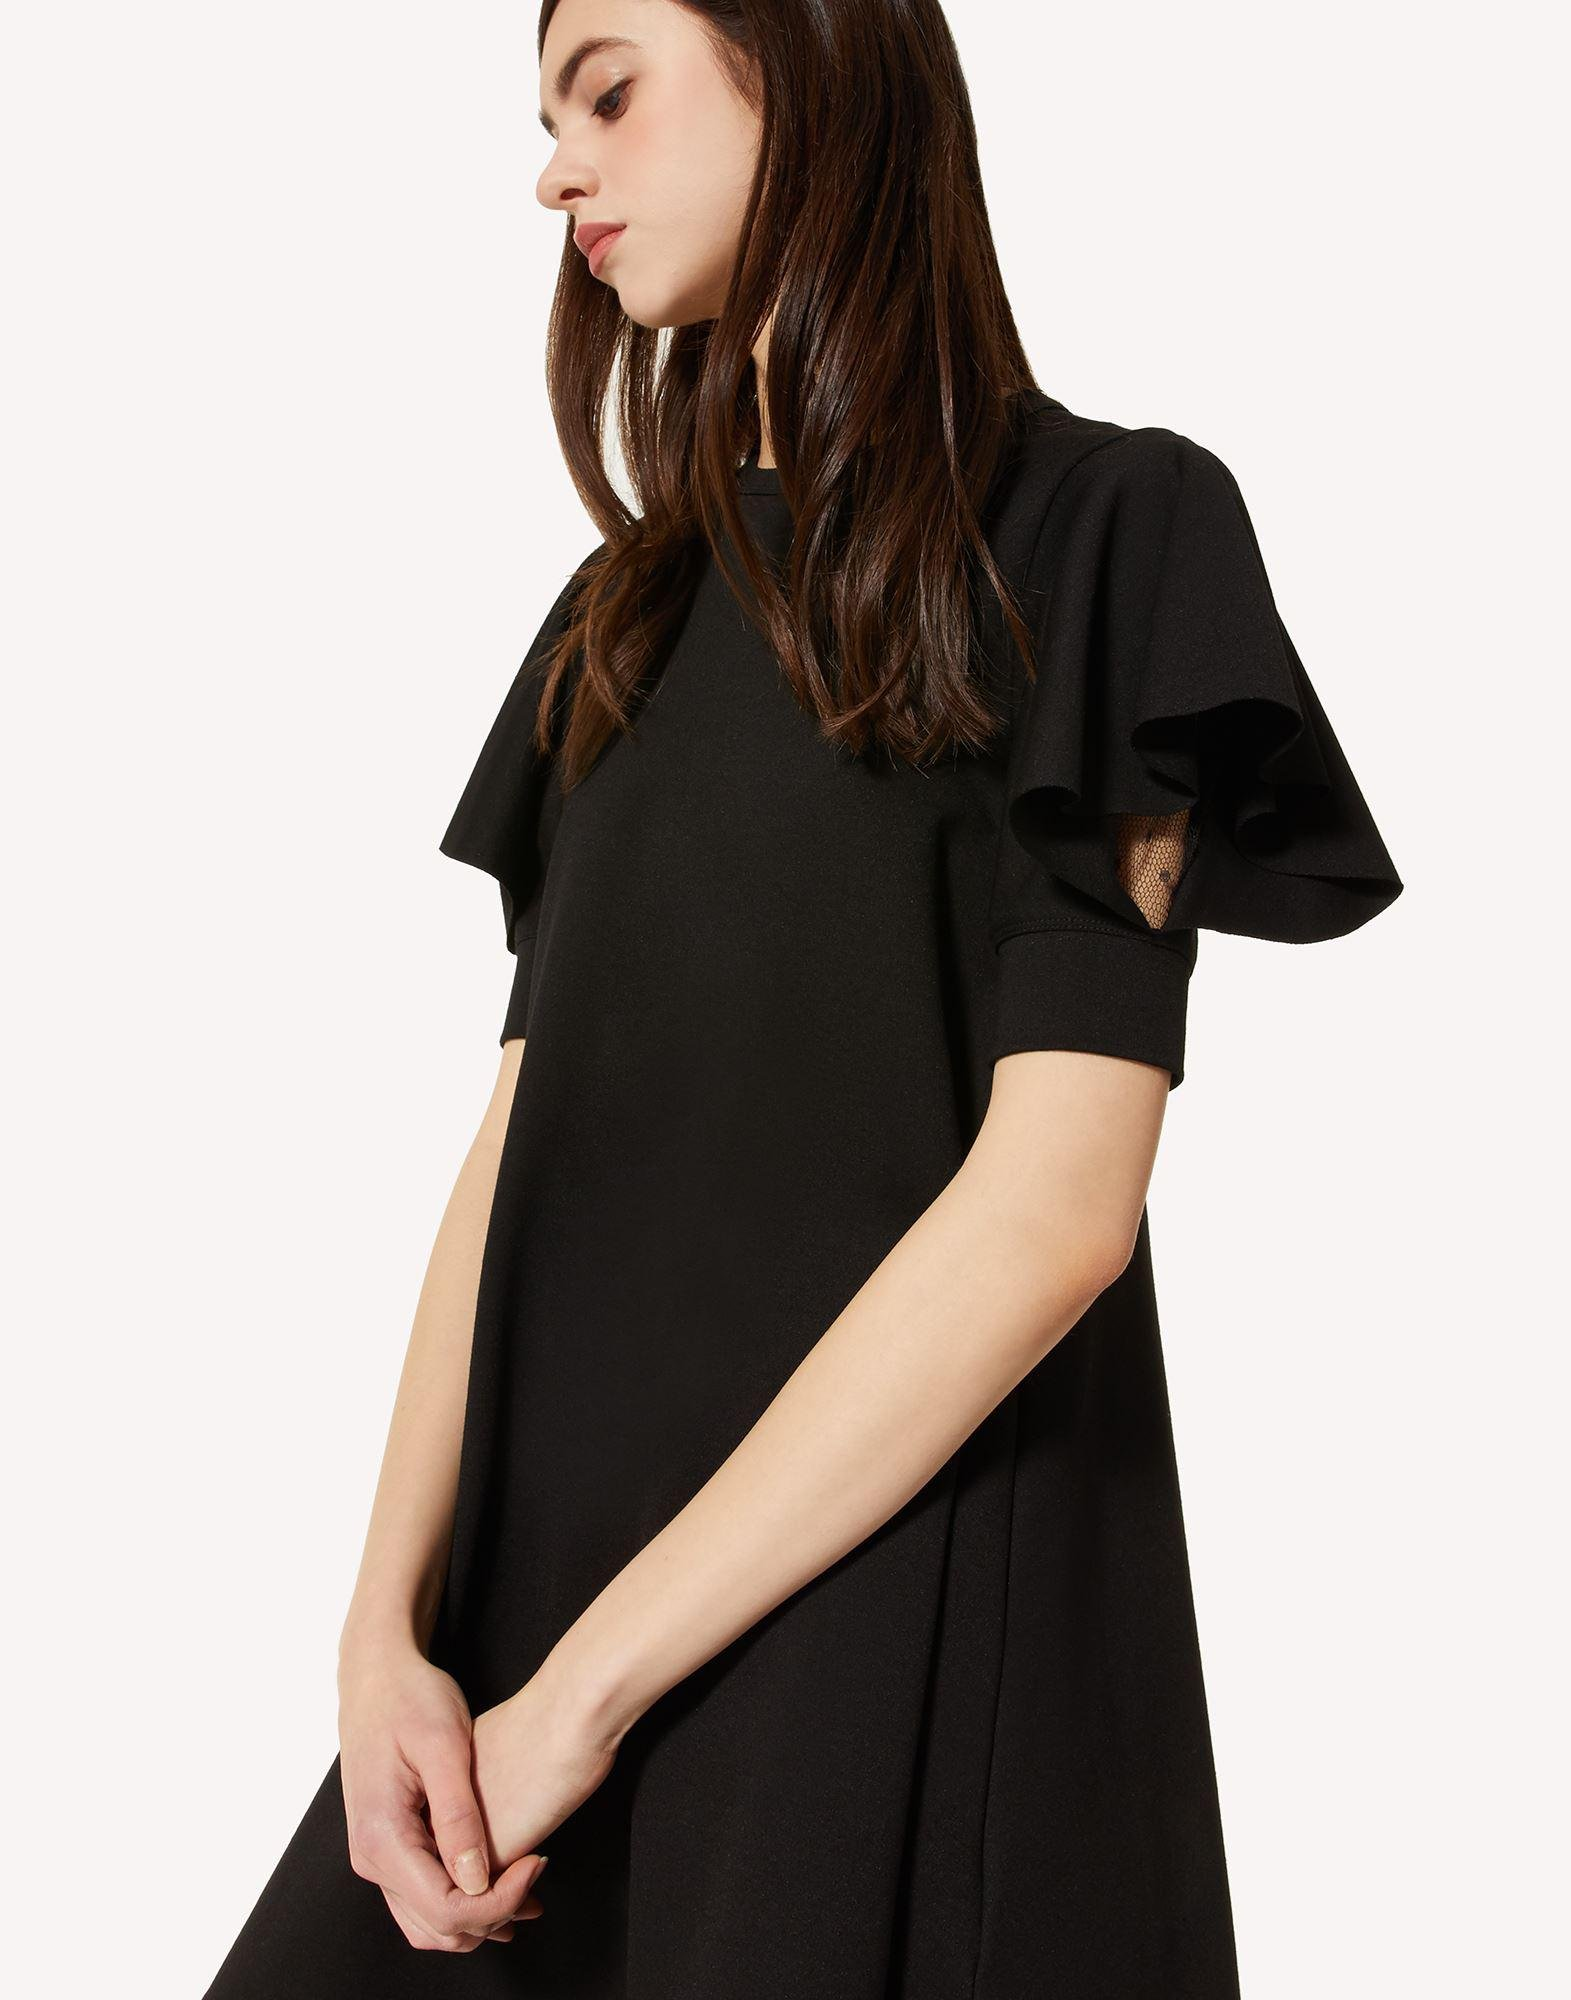 JERSEY DRESS WITH RUFFLE DETAIL 3